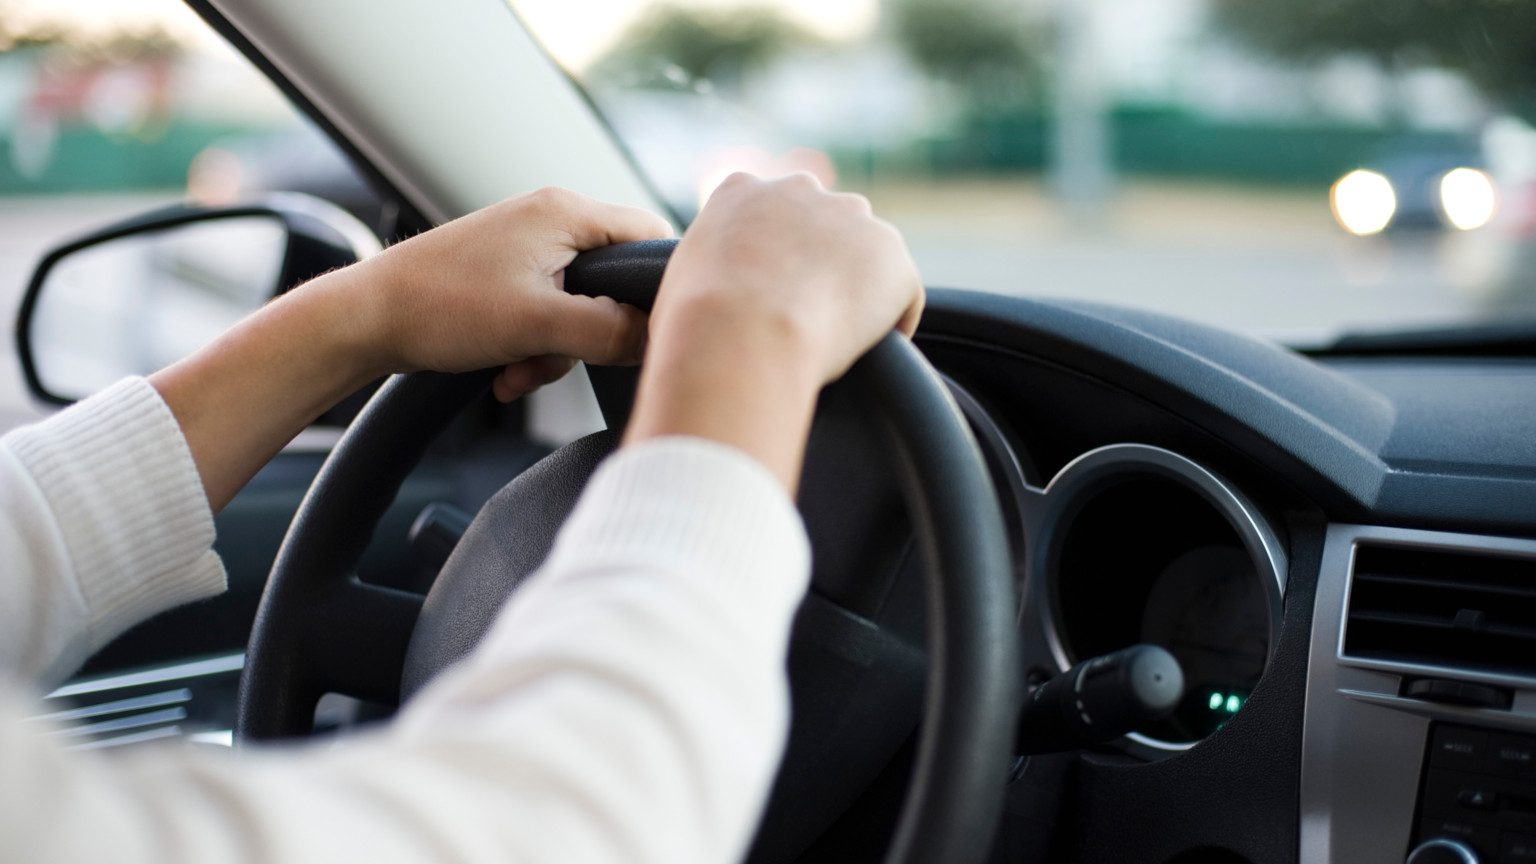 Close up of two hands on steering wheel of car while driving